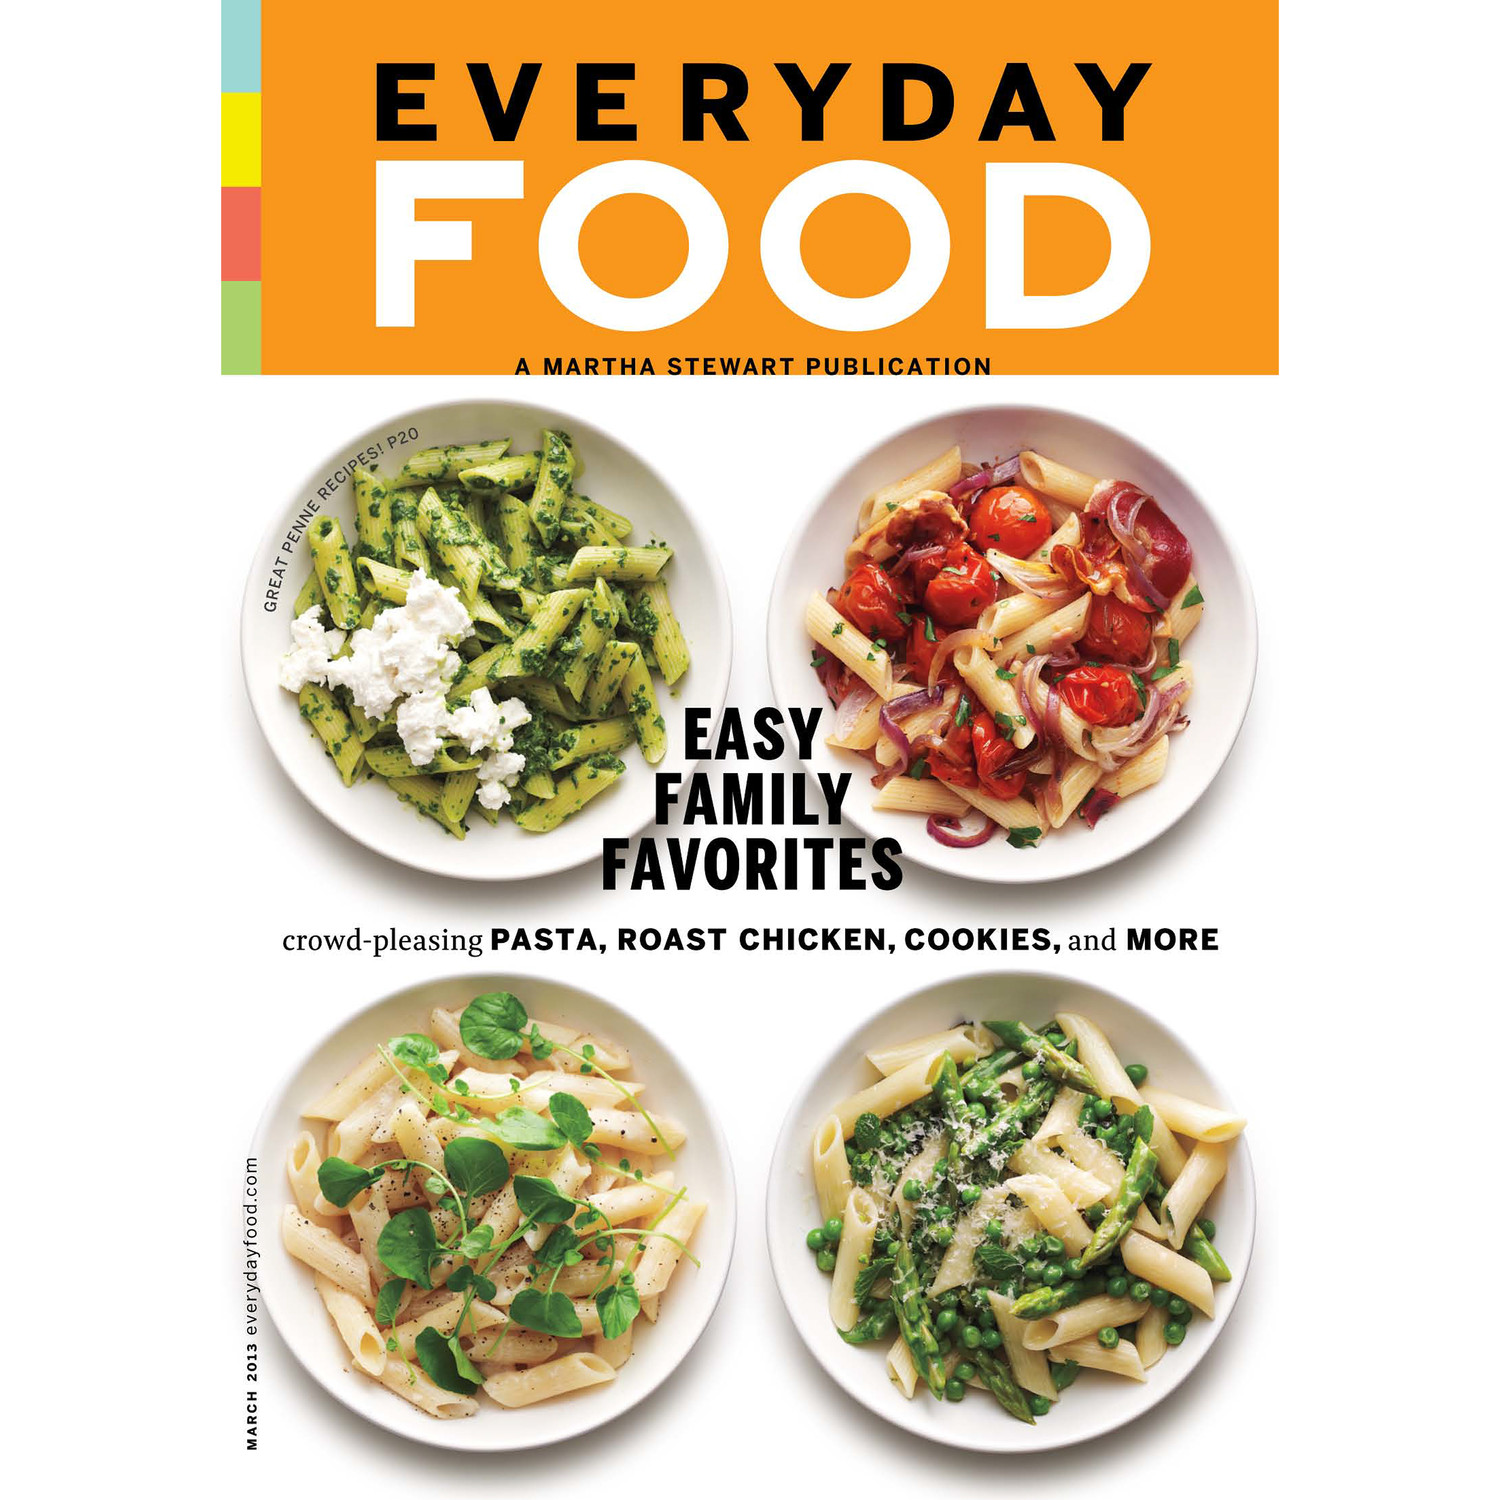 Everyday food may 2013 martha stewart forumfinder Images